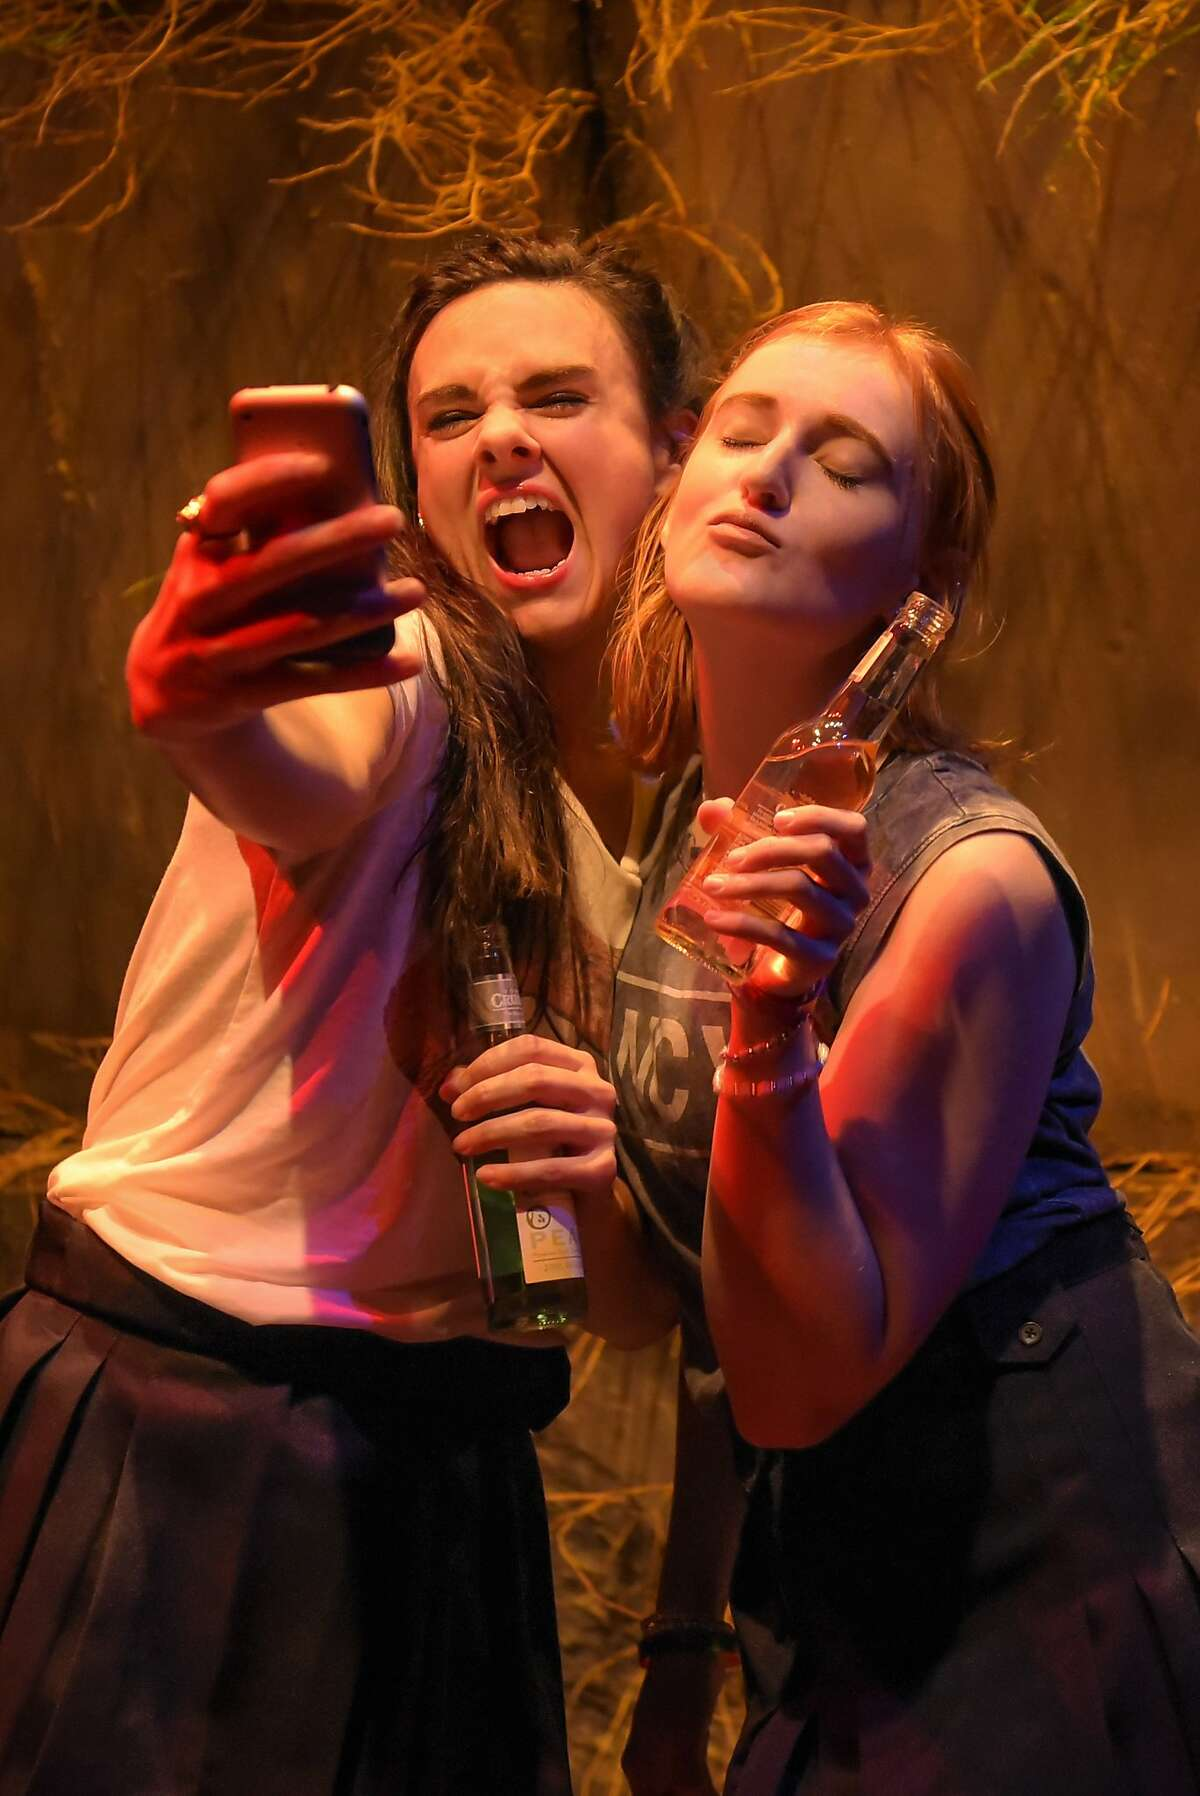 Childhood best friends Kelly (Chelsea Looy, right) and Sam (Jessica Lynn Carroll) navigate adolescence in the digital age in Crowded Fire Theater's American premiere of